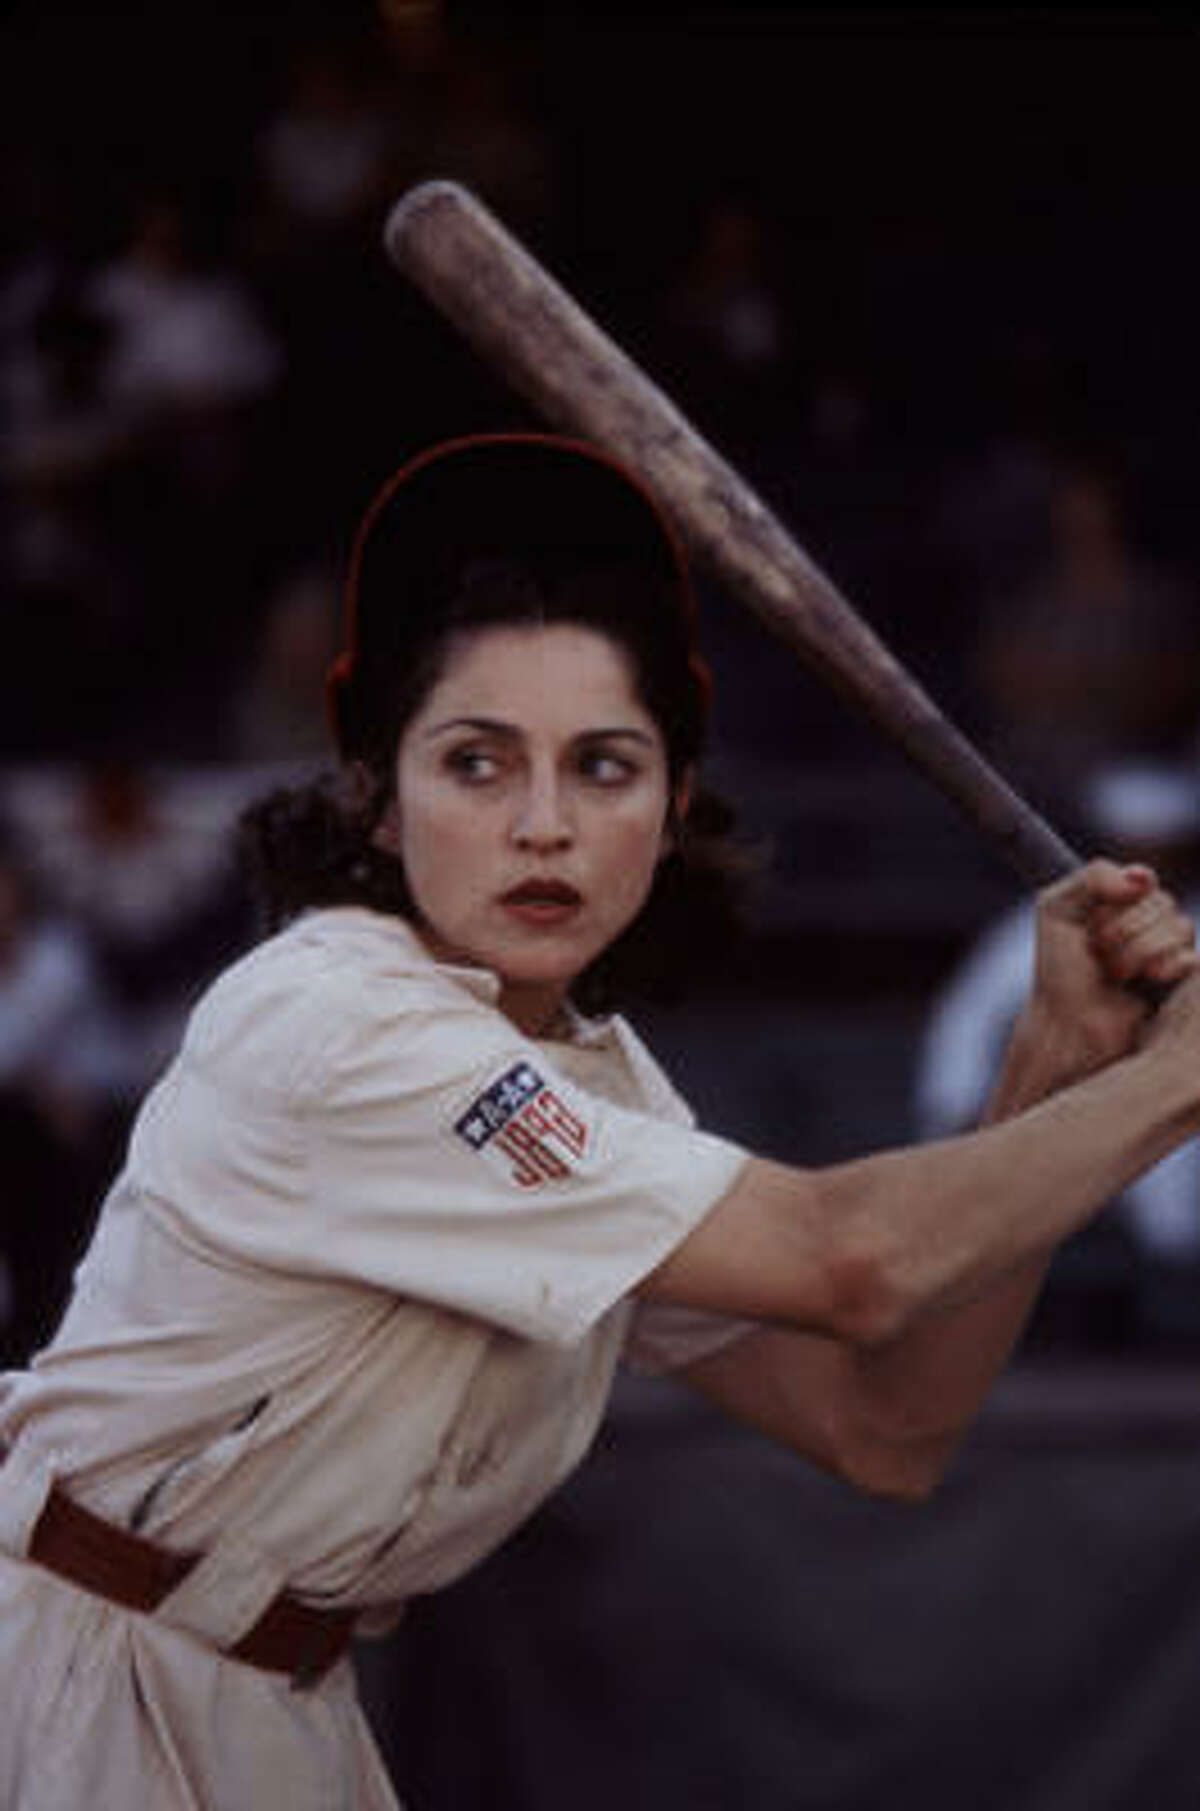 A League of Their Own (1992) Available on HuluJanuary 1 Two sisters join the first female professional baseball league and struggle to help it succeed amidst their own growing rivalry.